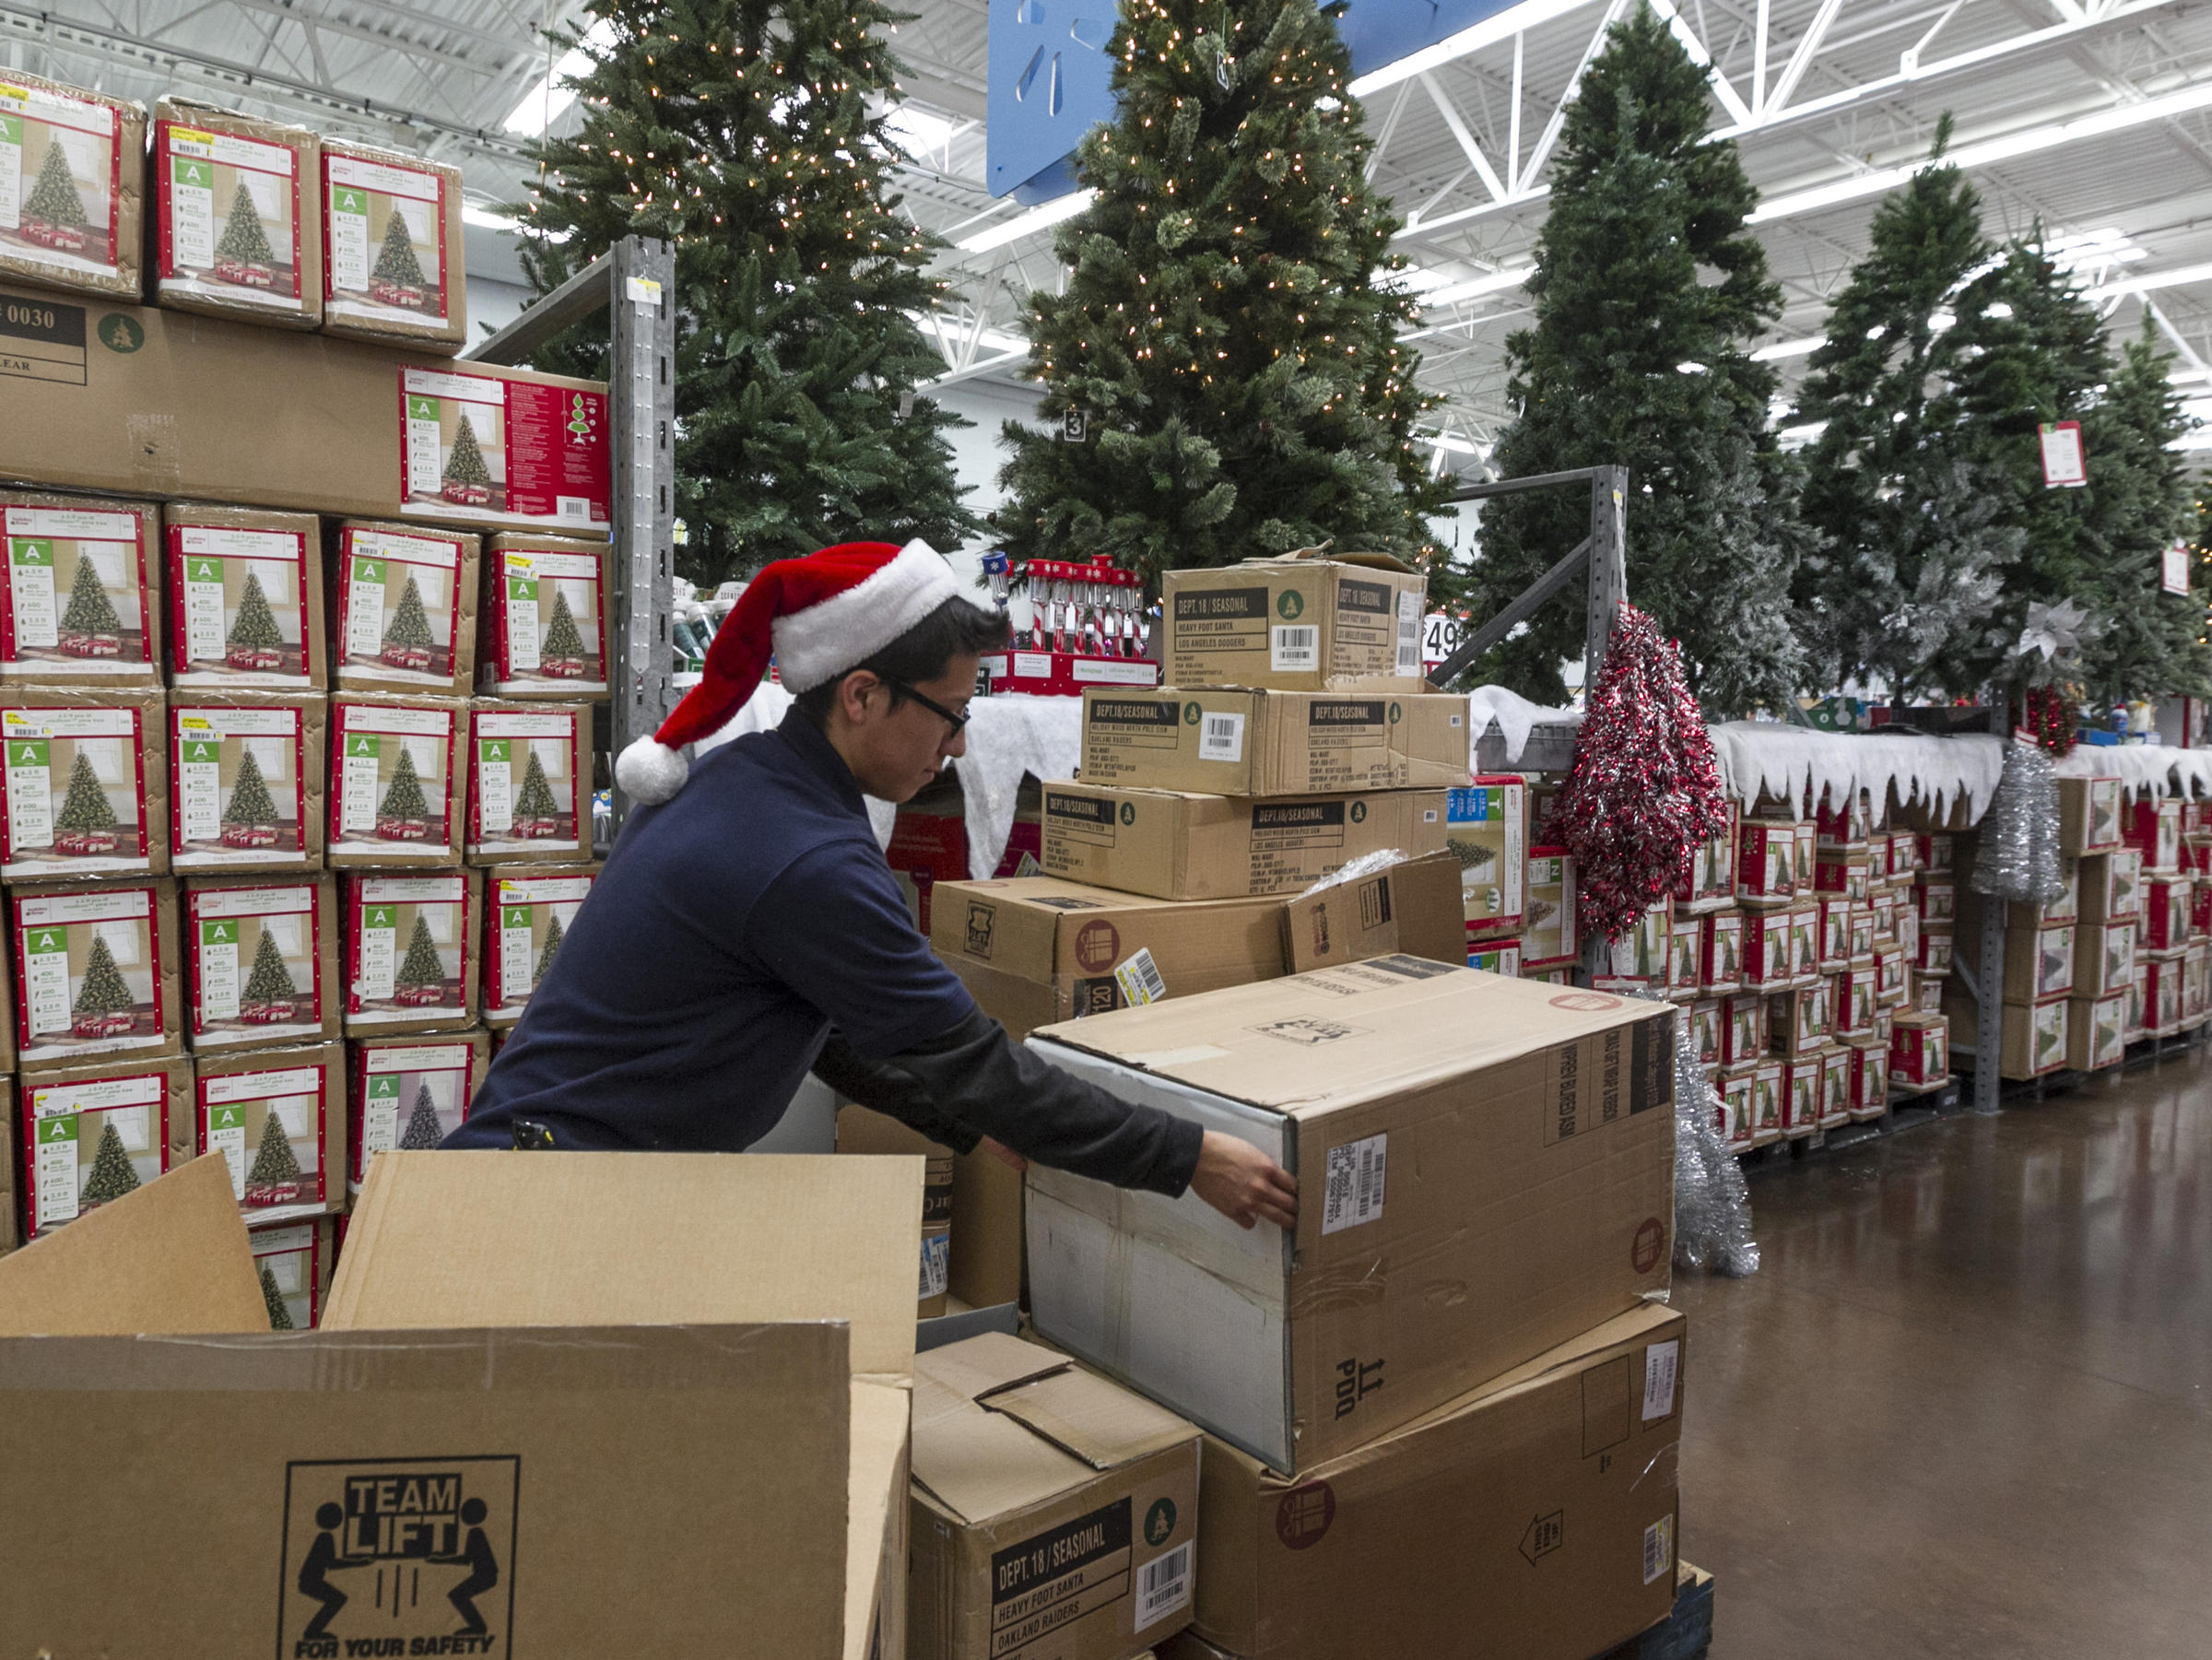 walmart associate angel campos stocks christmas decorations wednesday ahead of the pre black friday event at the wal mart supercenter store in rosemead - Black Friday Christmas Decorations